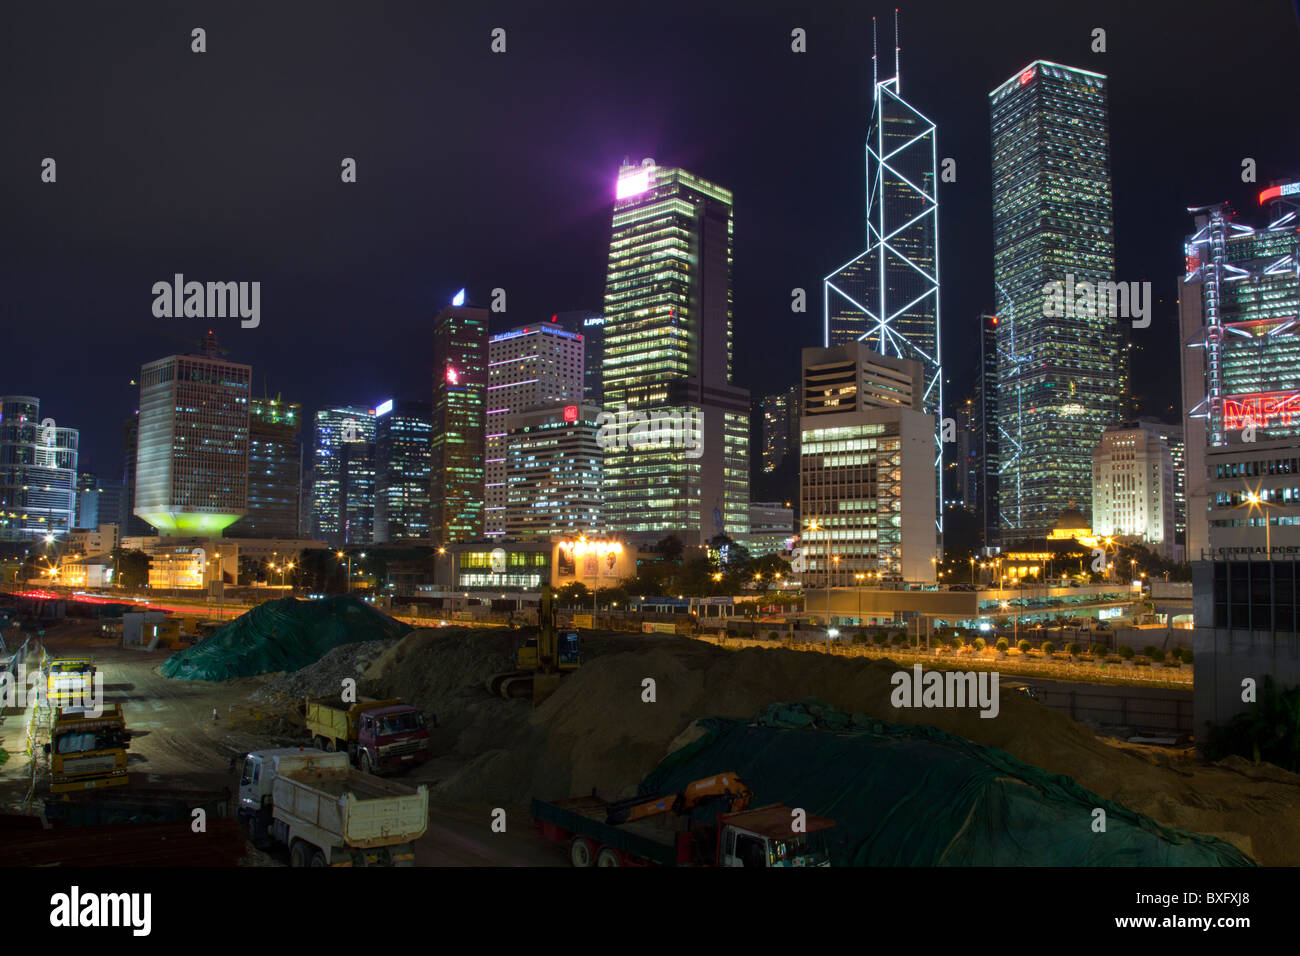 The amazing Hong Kong skyline as seen from Kowloon. The imposing structures include bank of china, Stock Photo